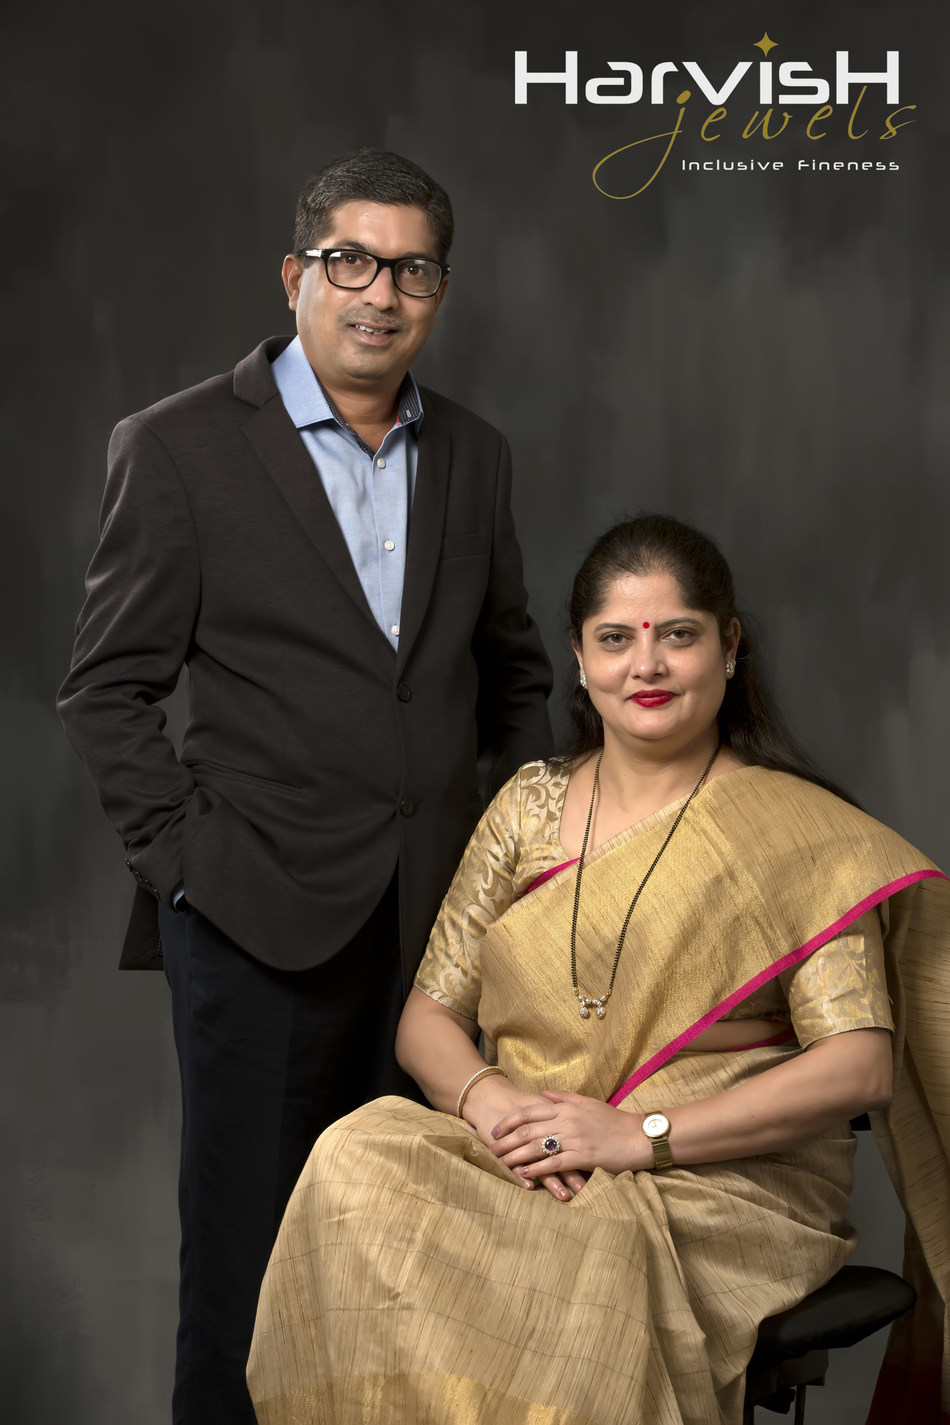 Ms. Vaishali Soni ( Director) and Mr. Harshad Soni ( Director), Harvish Jewels, Vadodara, Gujarat (PRNewsfoto/Harvish Jewels)